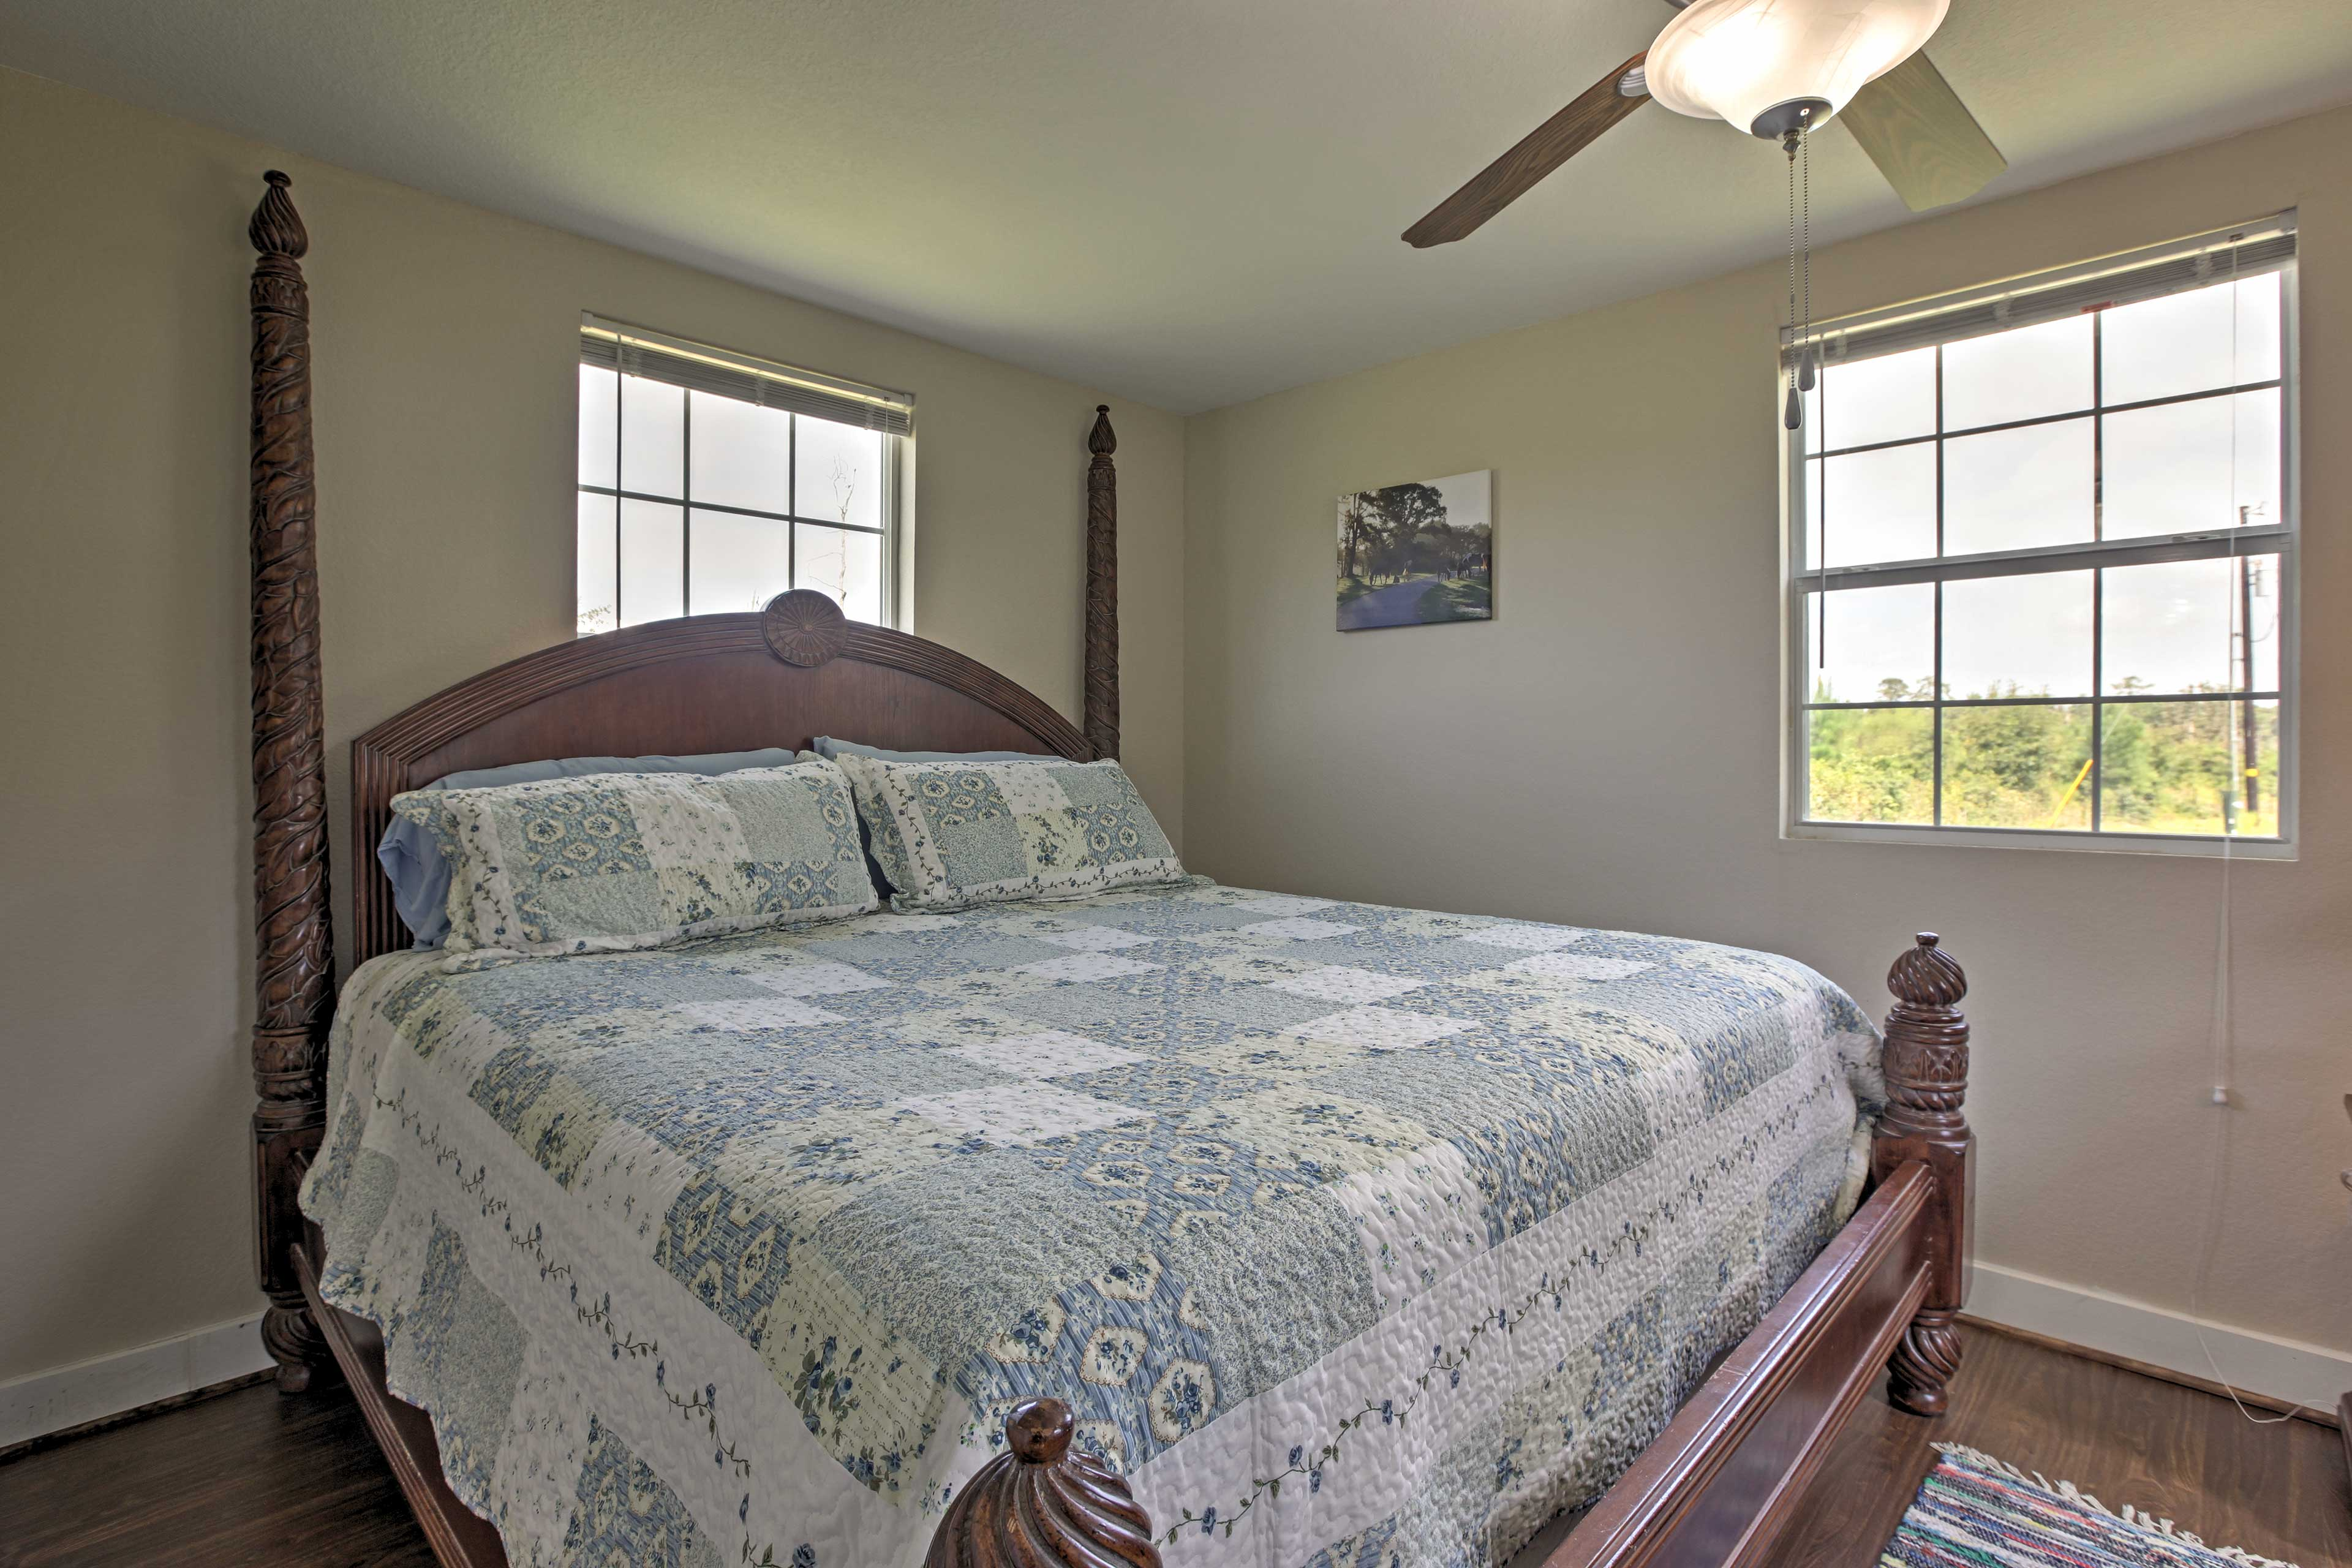 Wake up naturally as the morning light pours inside the bedroom.